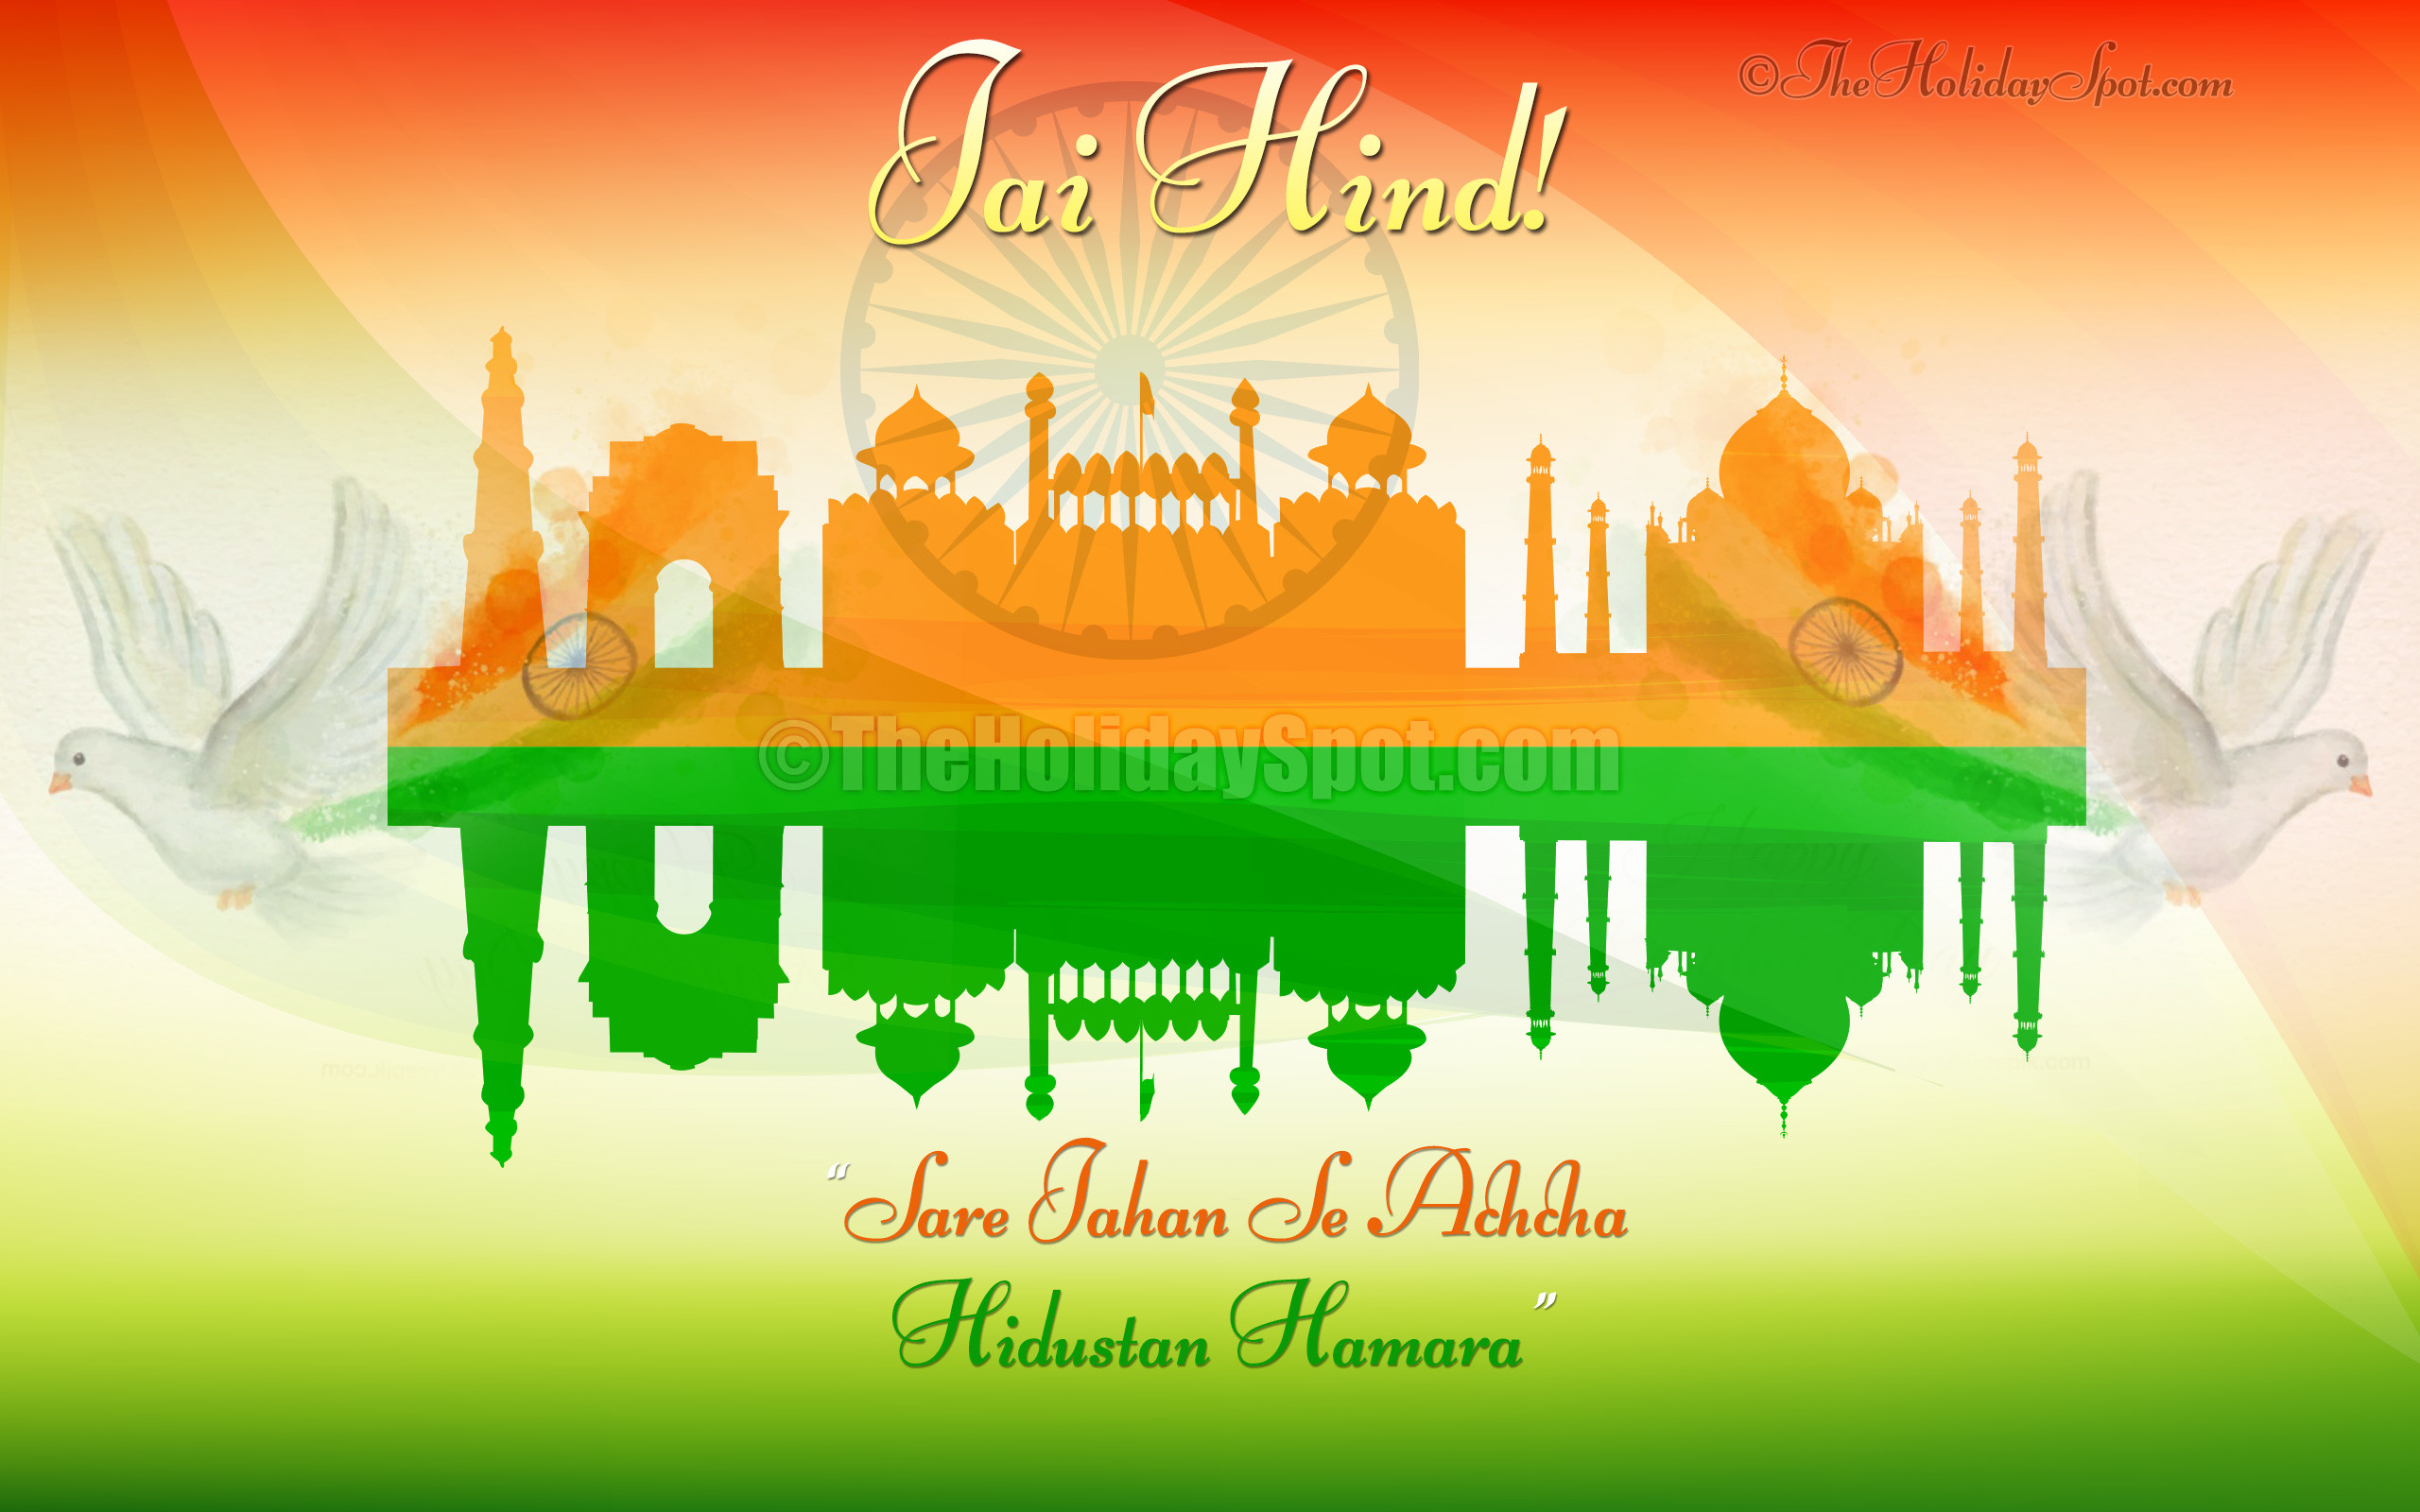 2560x1600 Indian Independence Day Wallpaper - Red Fort, India Gage, Qutub Minar, Taj  Mohal